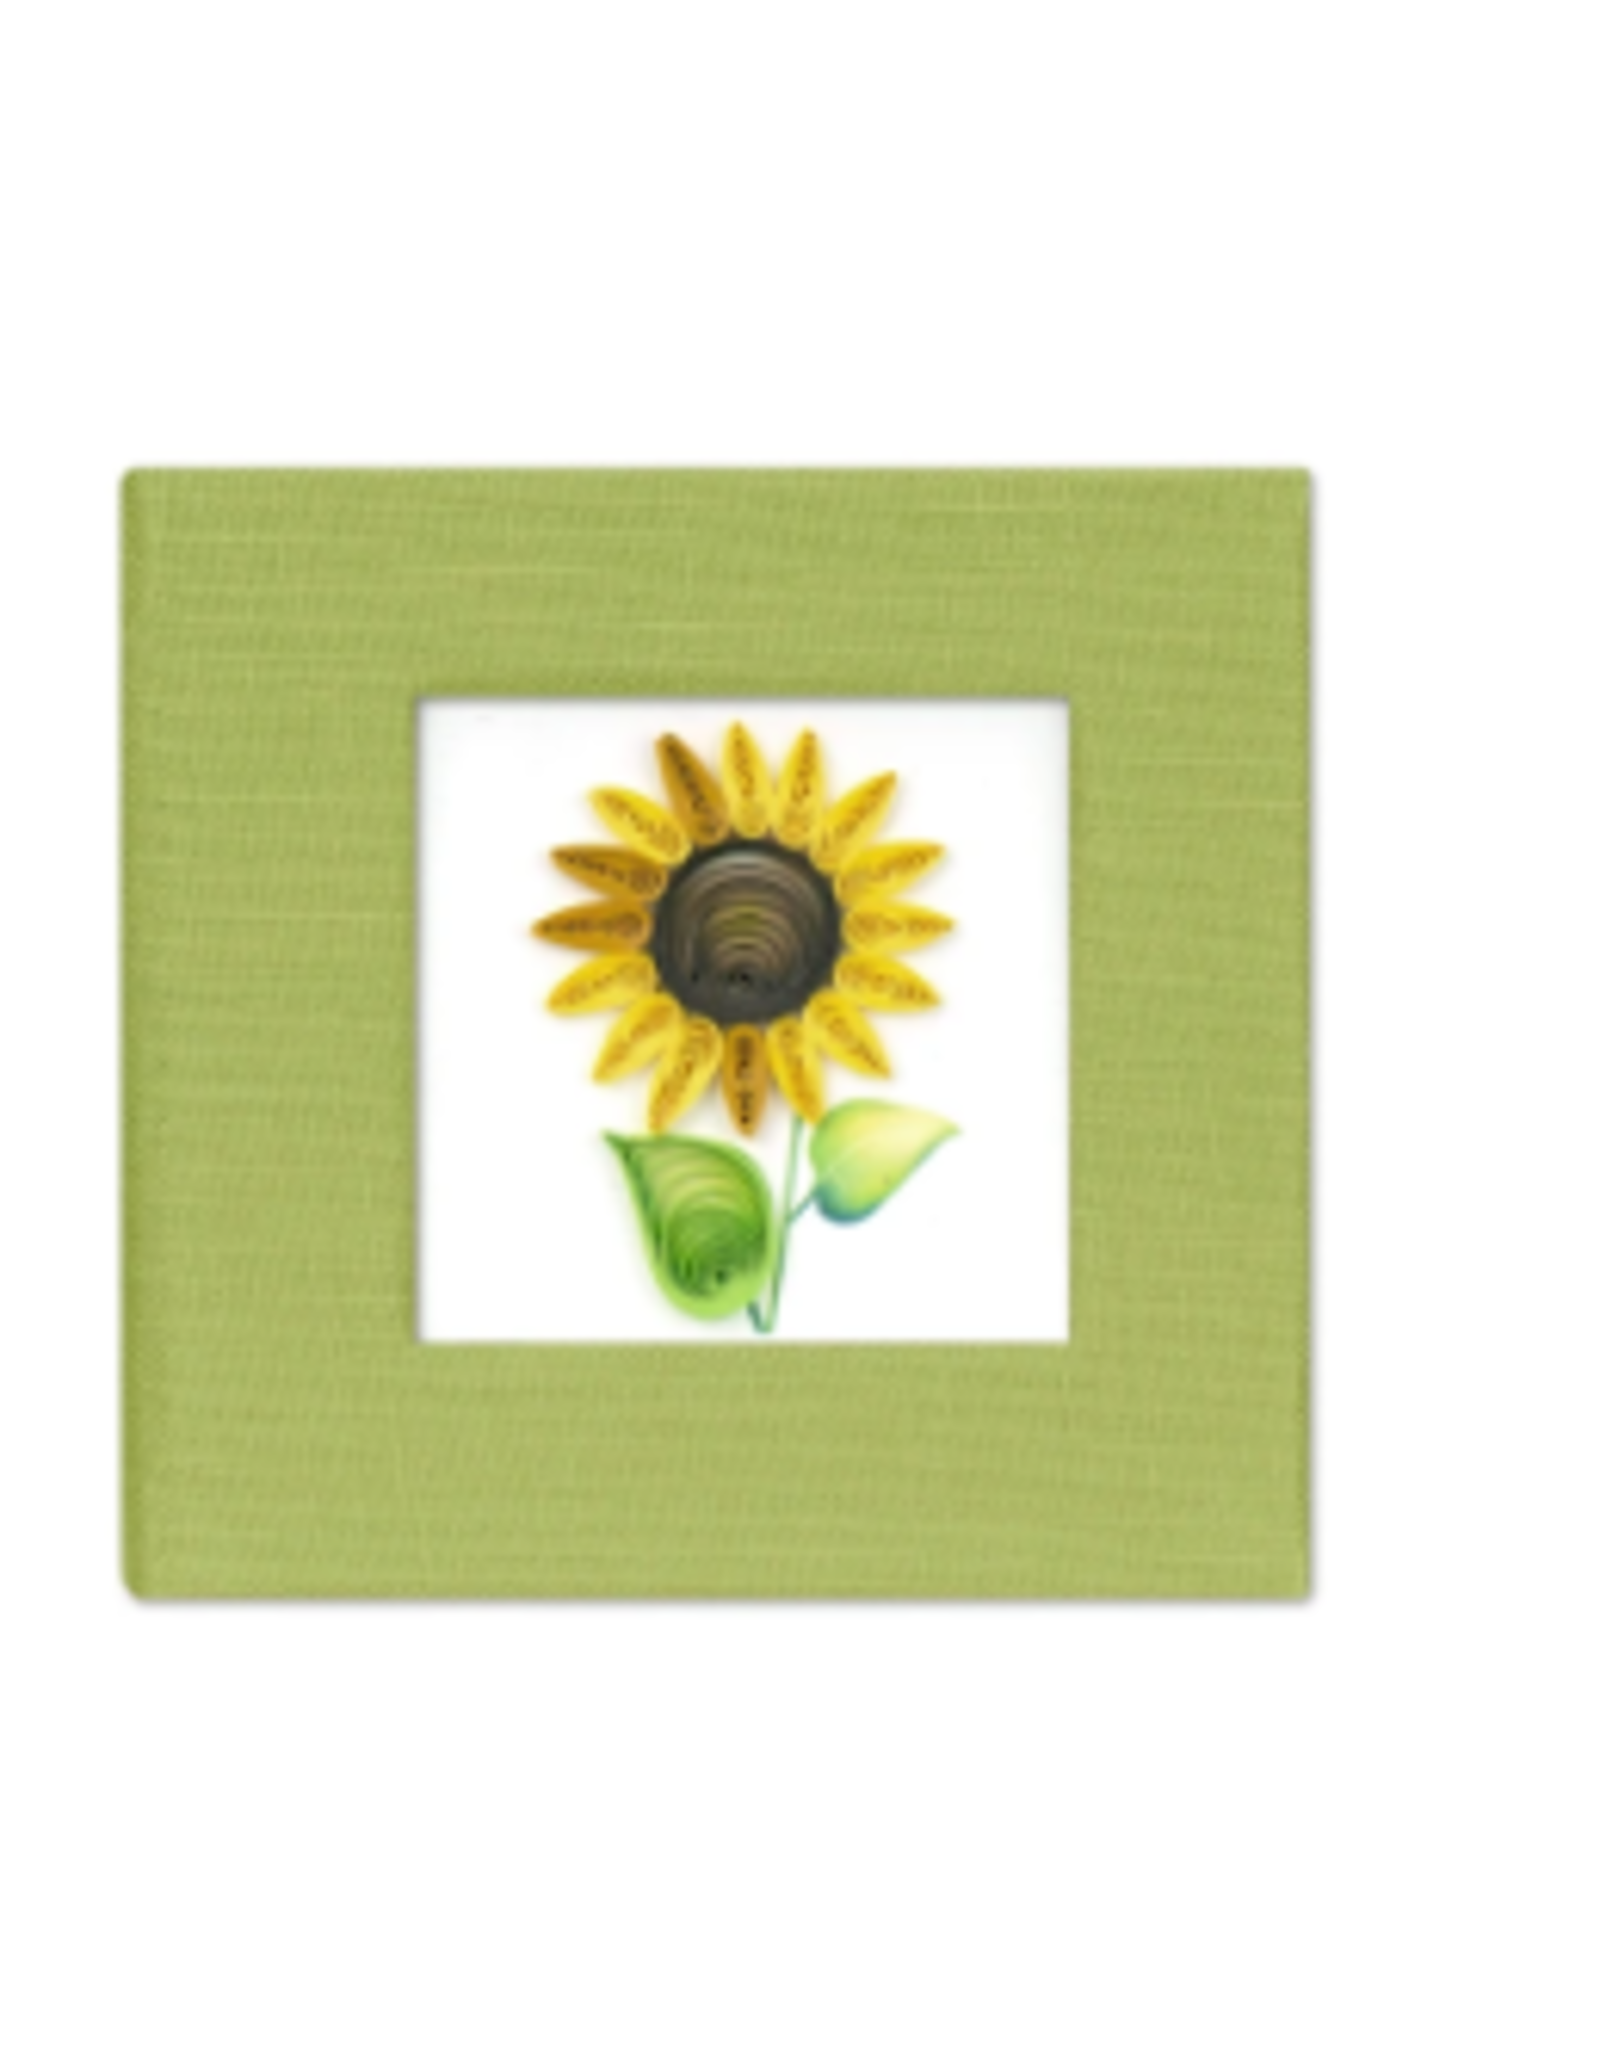 Quill Post It Notes Cover, Sunflower, Vietnam